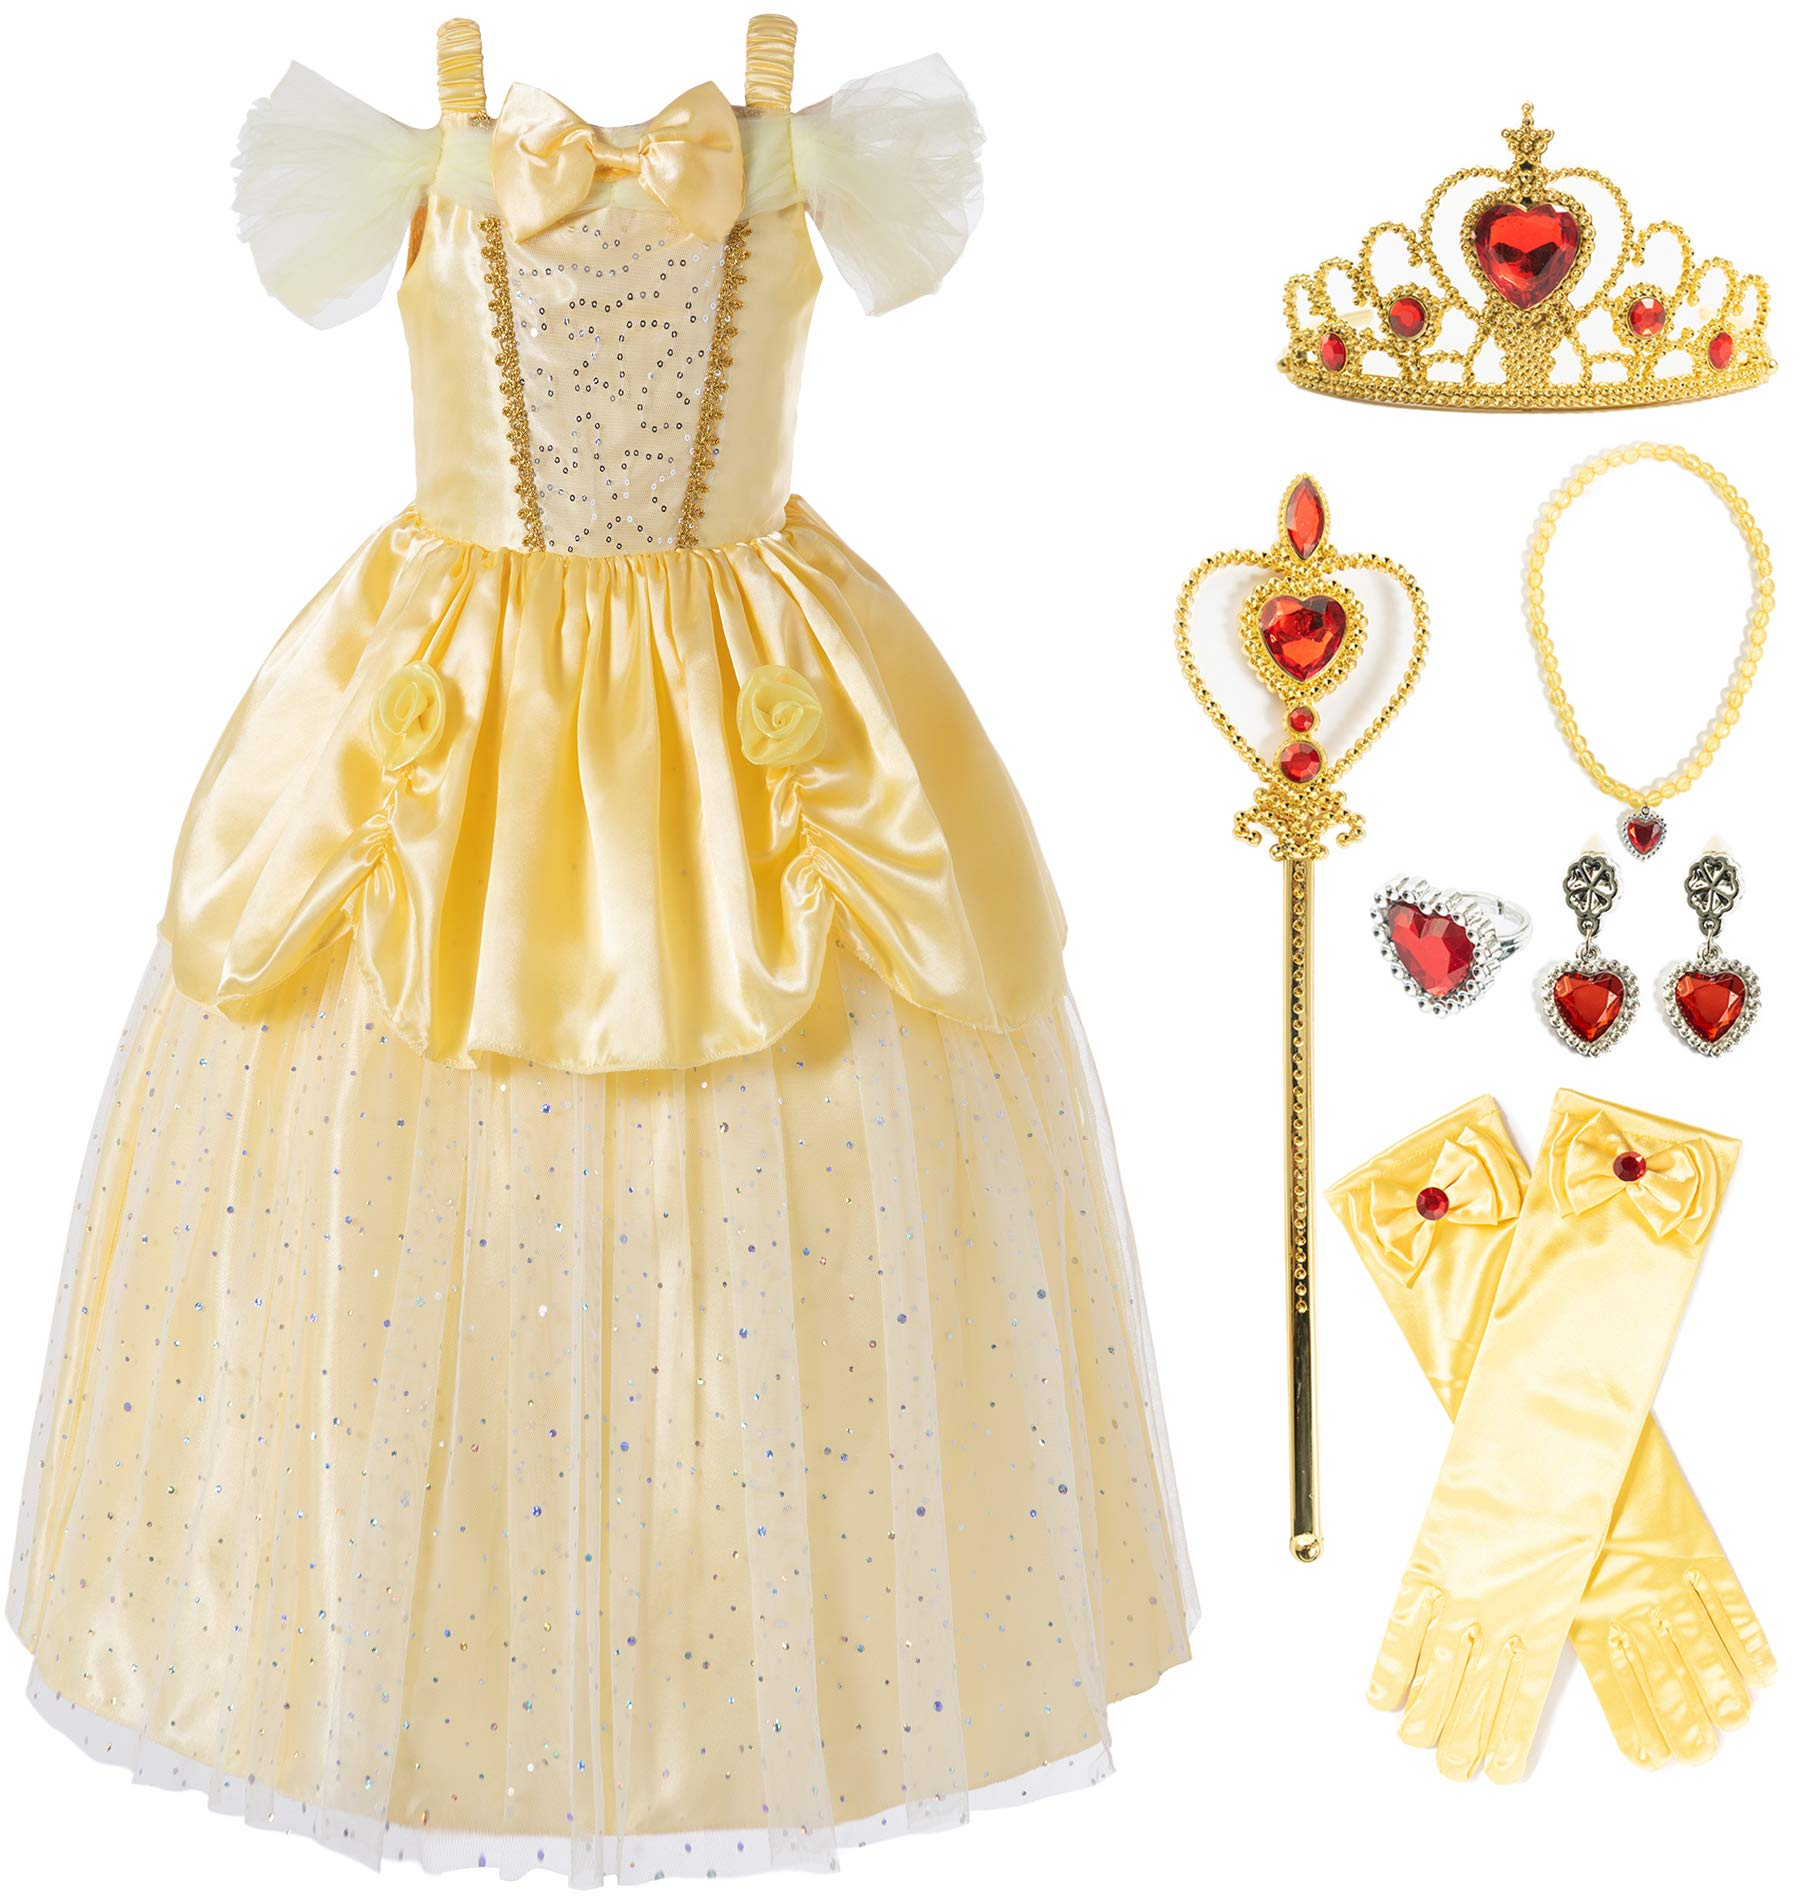 Princess Dress Up Accessories Gift Set for Aurora Crown Scepter Necklace Earrings Ring Gloves 6 Pieces Princess Acessories for Little Girls